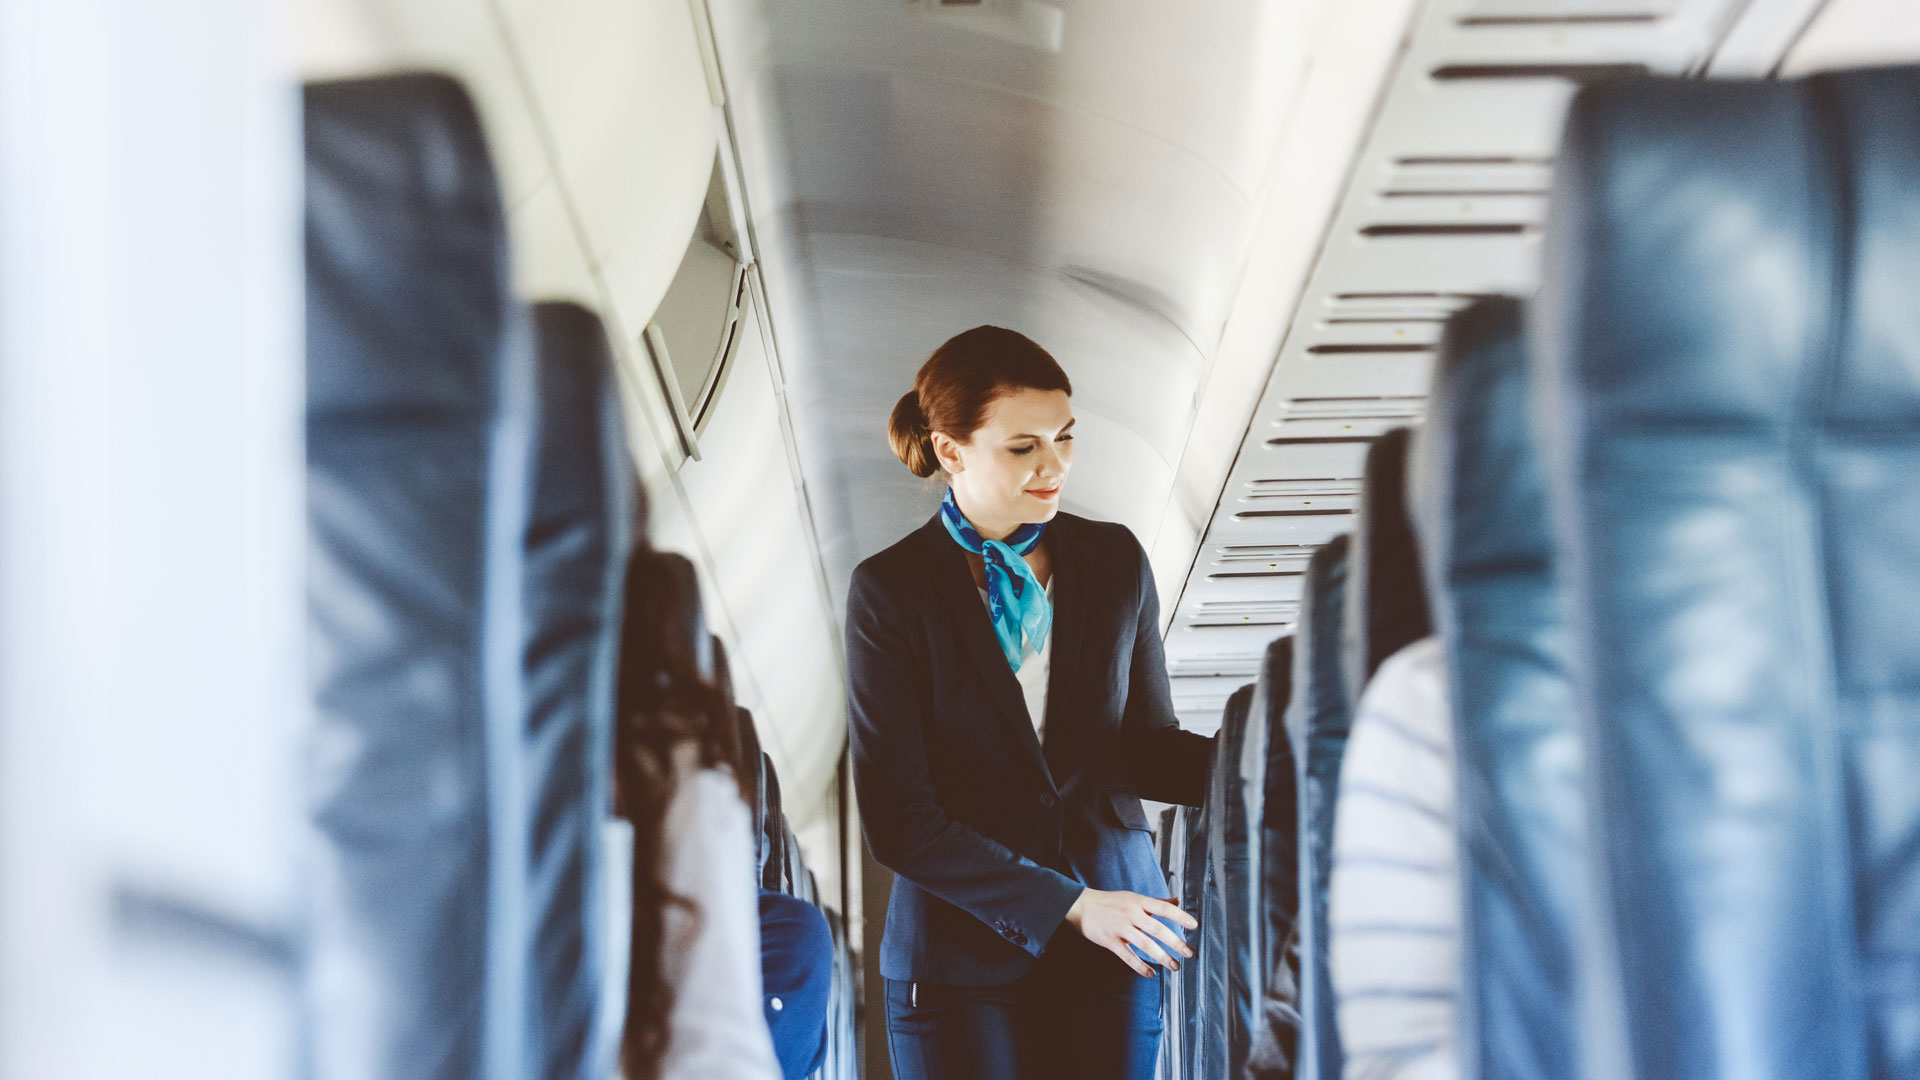 EASA safety bulletin suggests airlines check their cabin air filtration